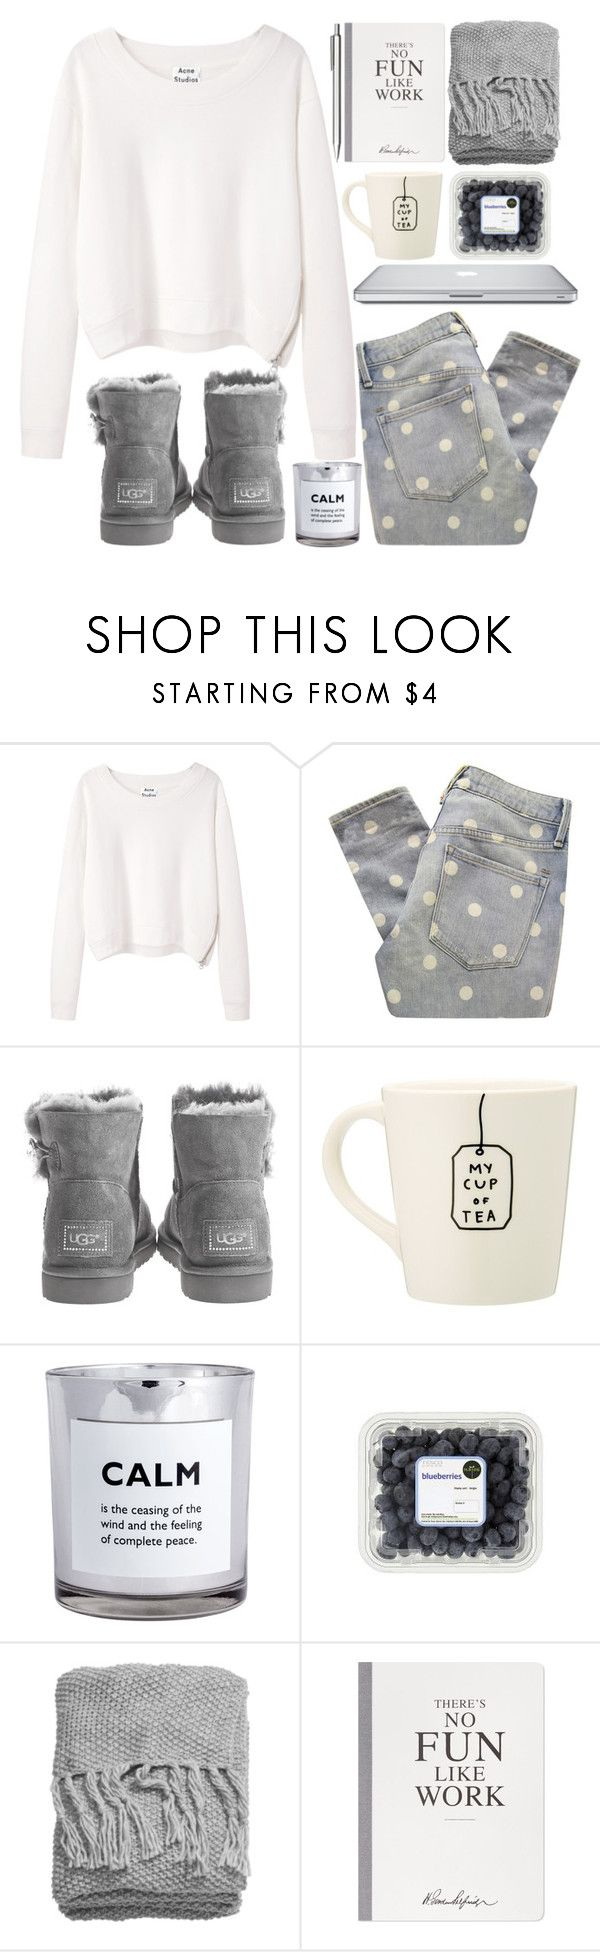 """""""Untitled #17"""" by dreamcloset1996 ❤ liked on Polyvore featuring Acne Studios, Marc by Marc Jacobs, Novo, UGG Australia, H&M, Selfridges and Muji"""